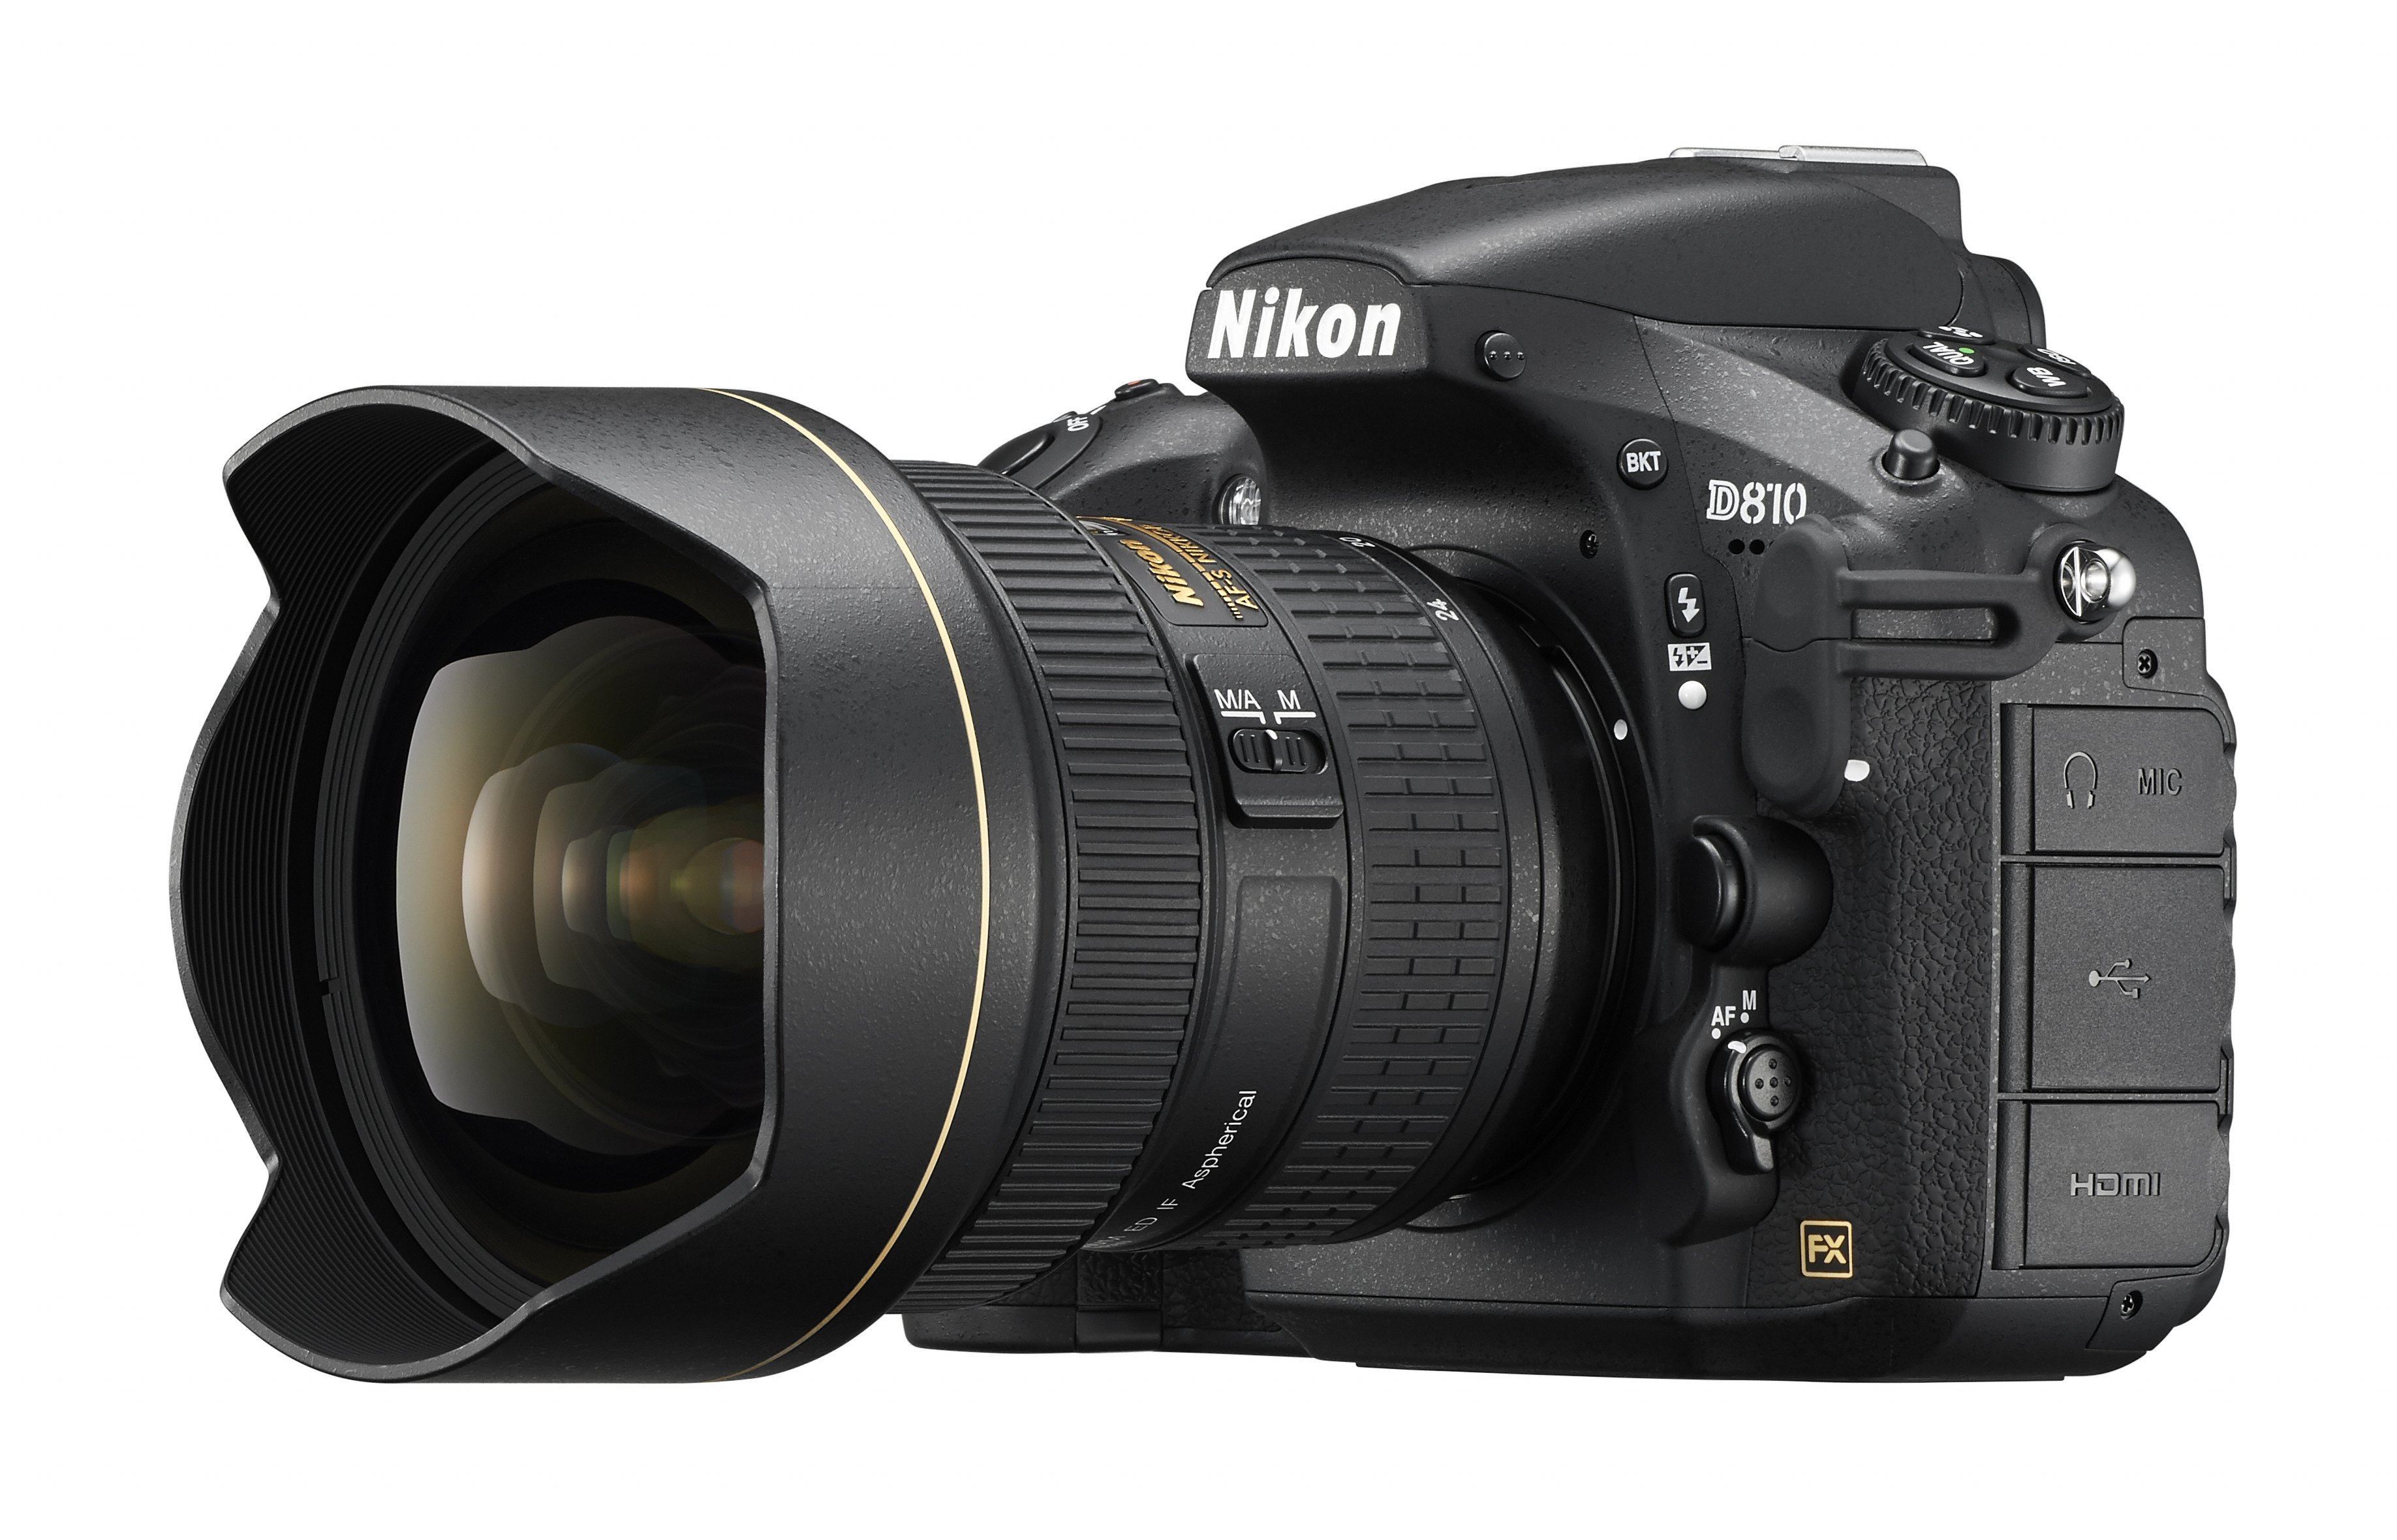 Nikon D810 best camera for landscape photography